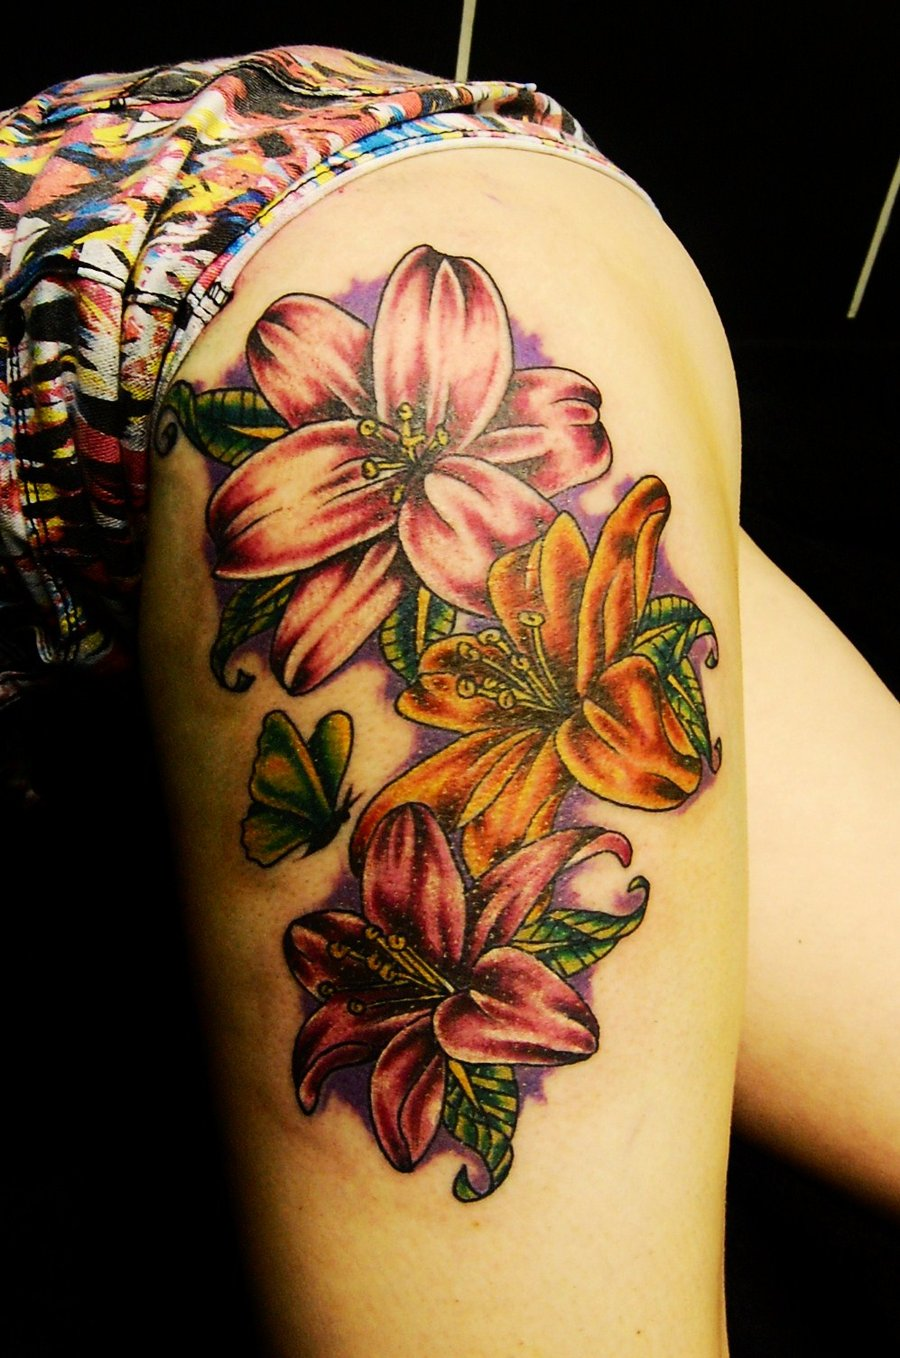 Flower Tattoo Designs For Women Unique: Lily Tattoos Designs, Ideas And Meaning